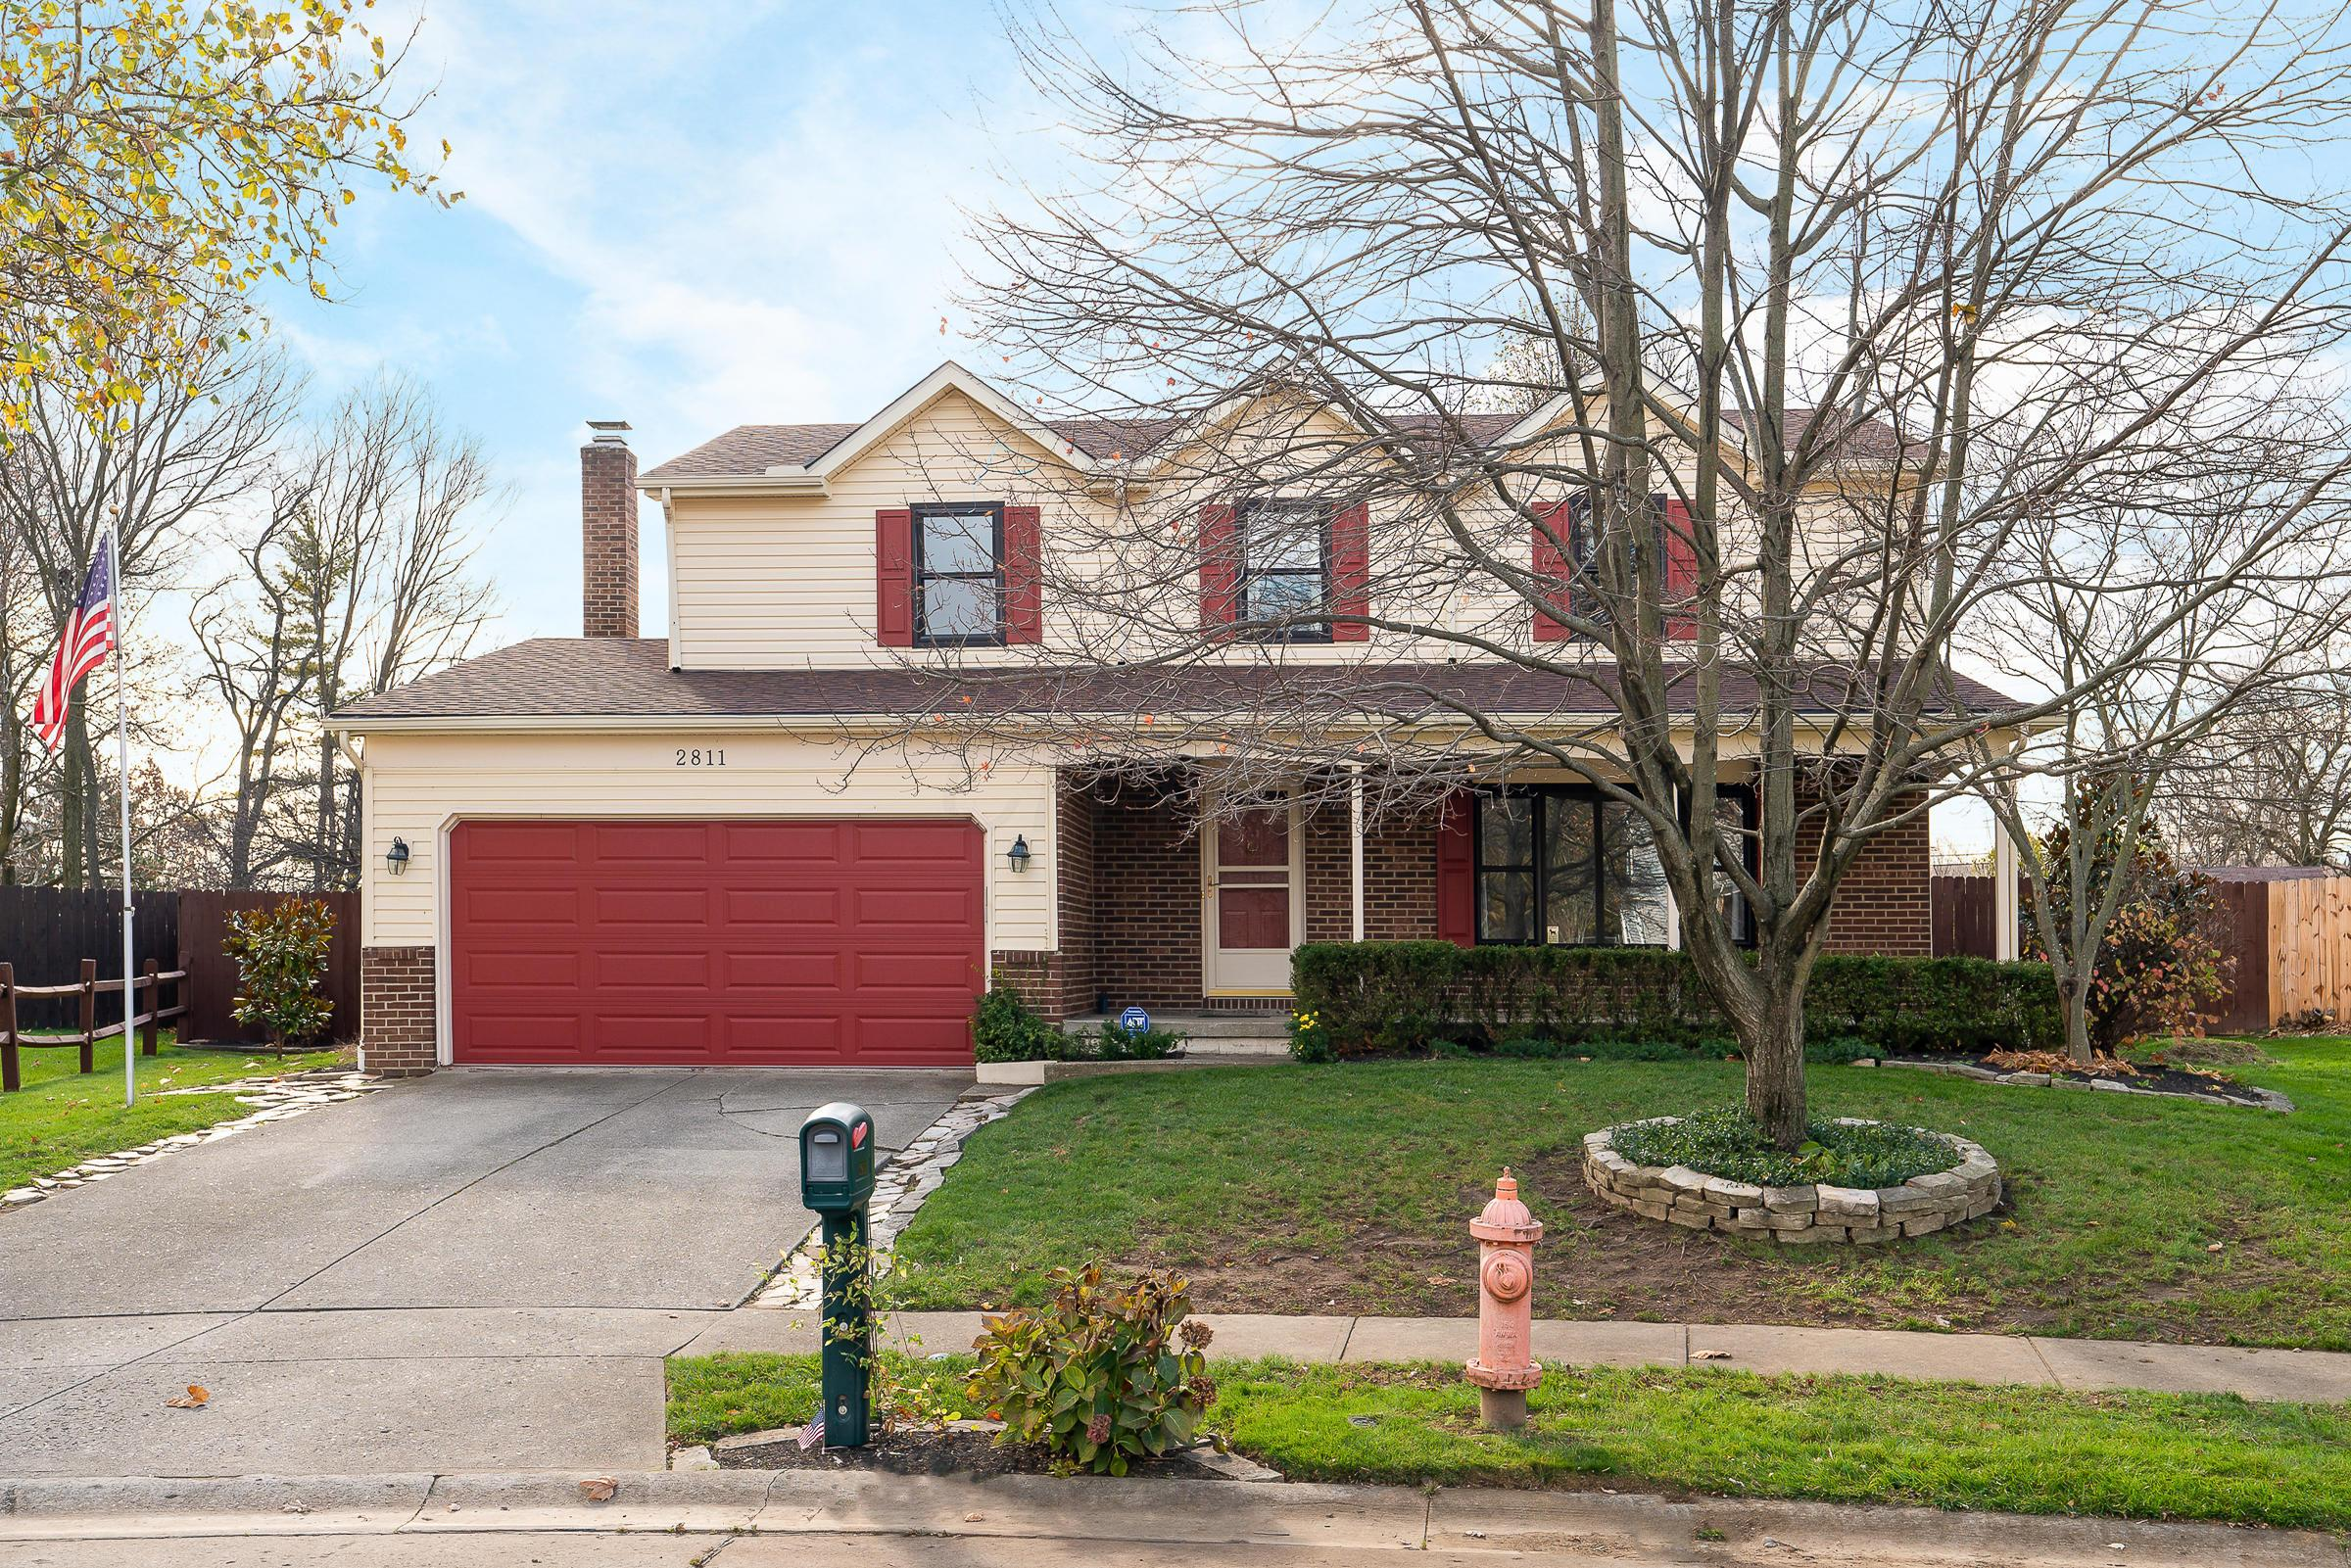 2811 Shellwick Court, Columbus, Ohio 43235, 4 Bedrooms Bedrooms, ,3 BathroomsBathrooms,Residential,For Sale,Shellwick,220040990